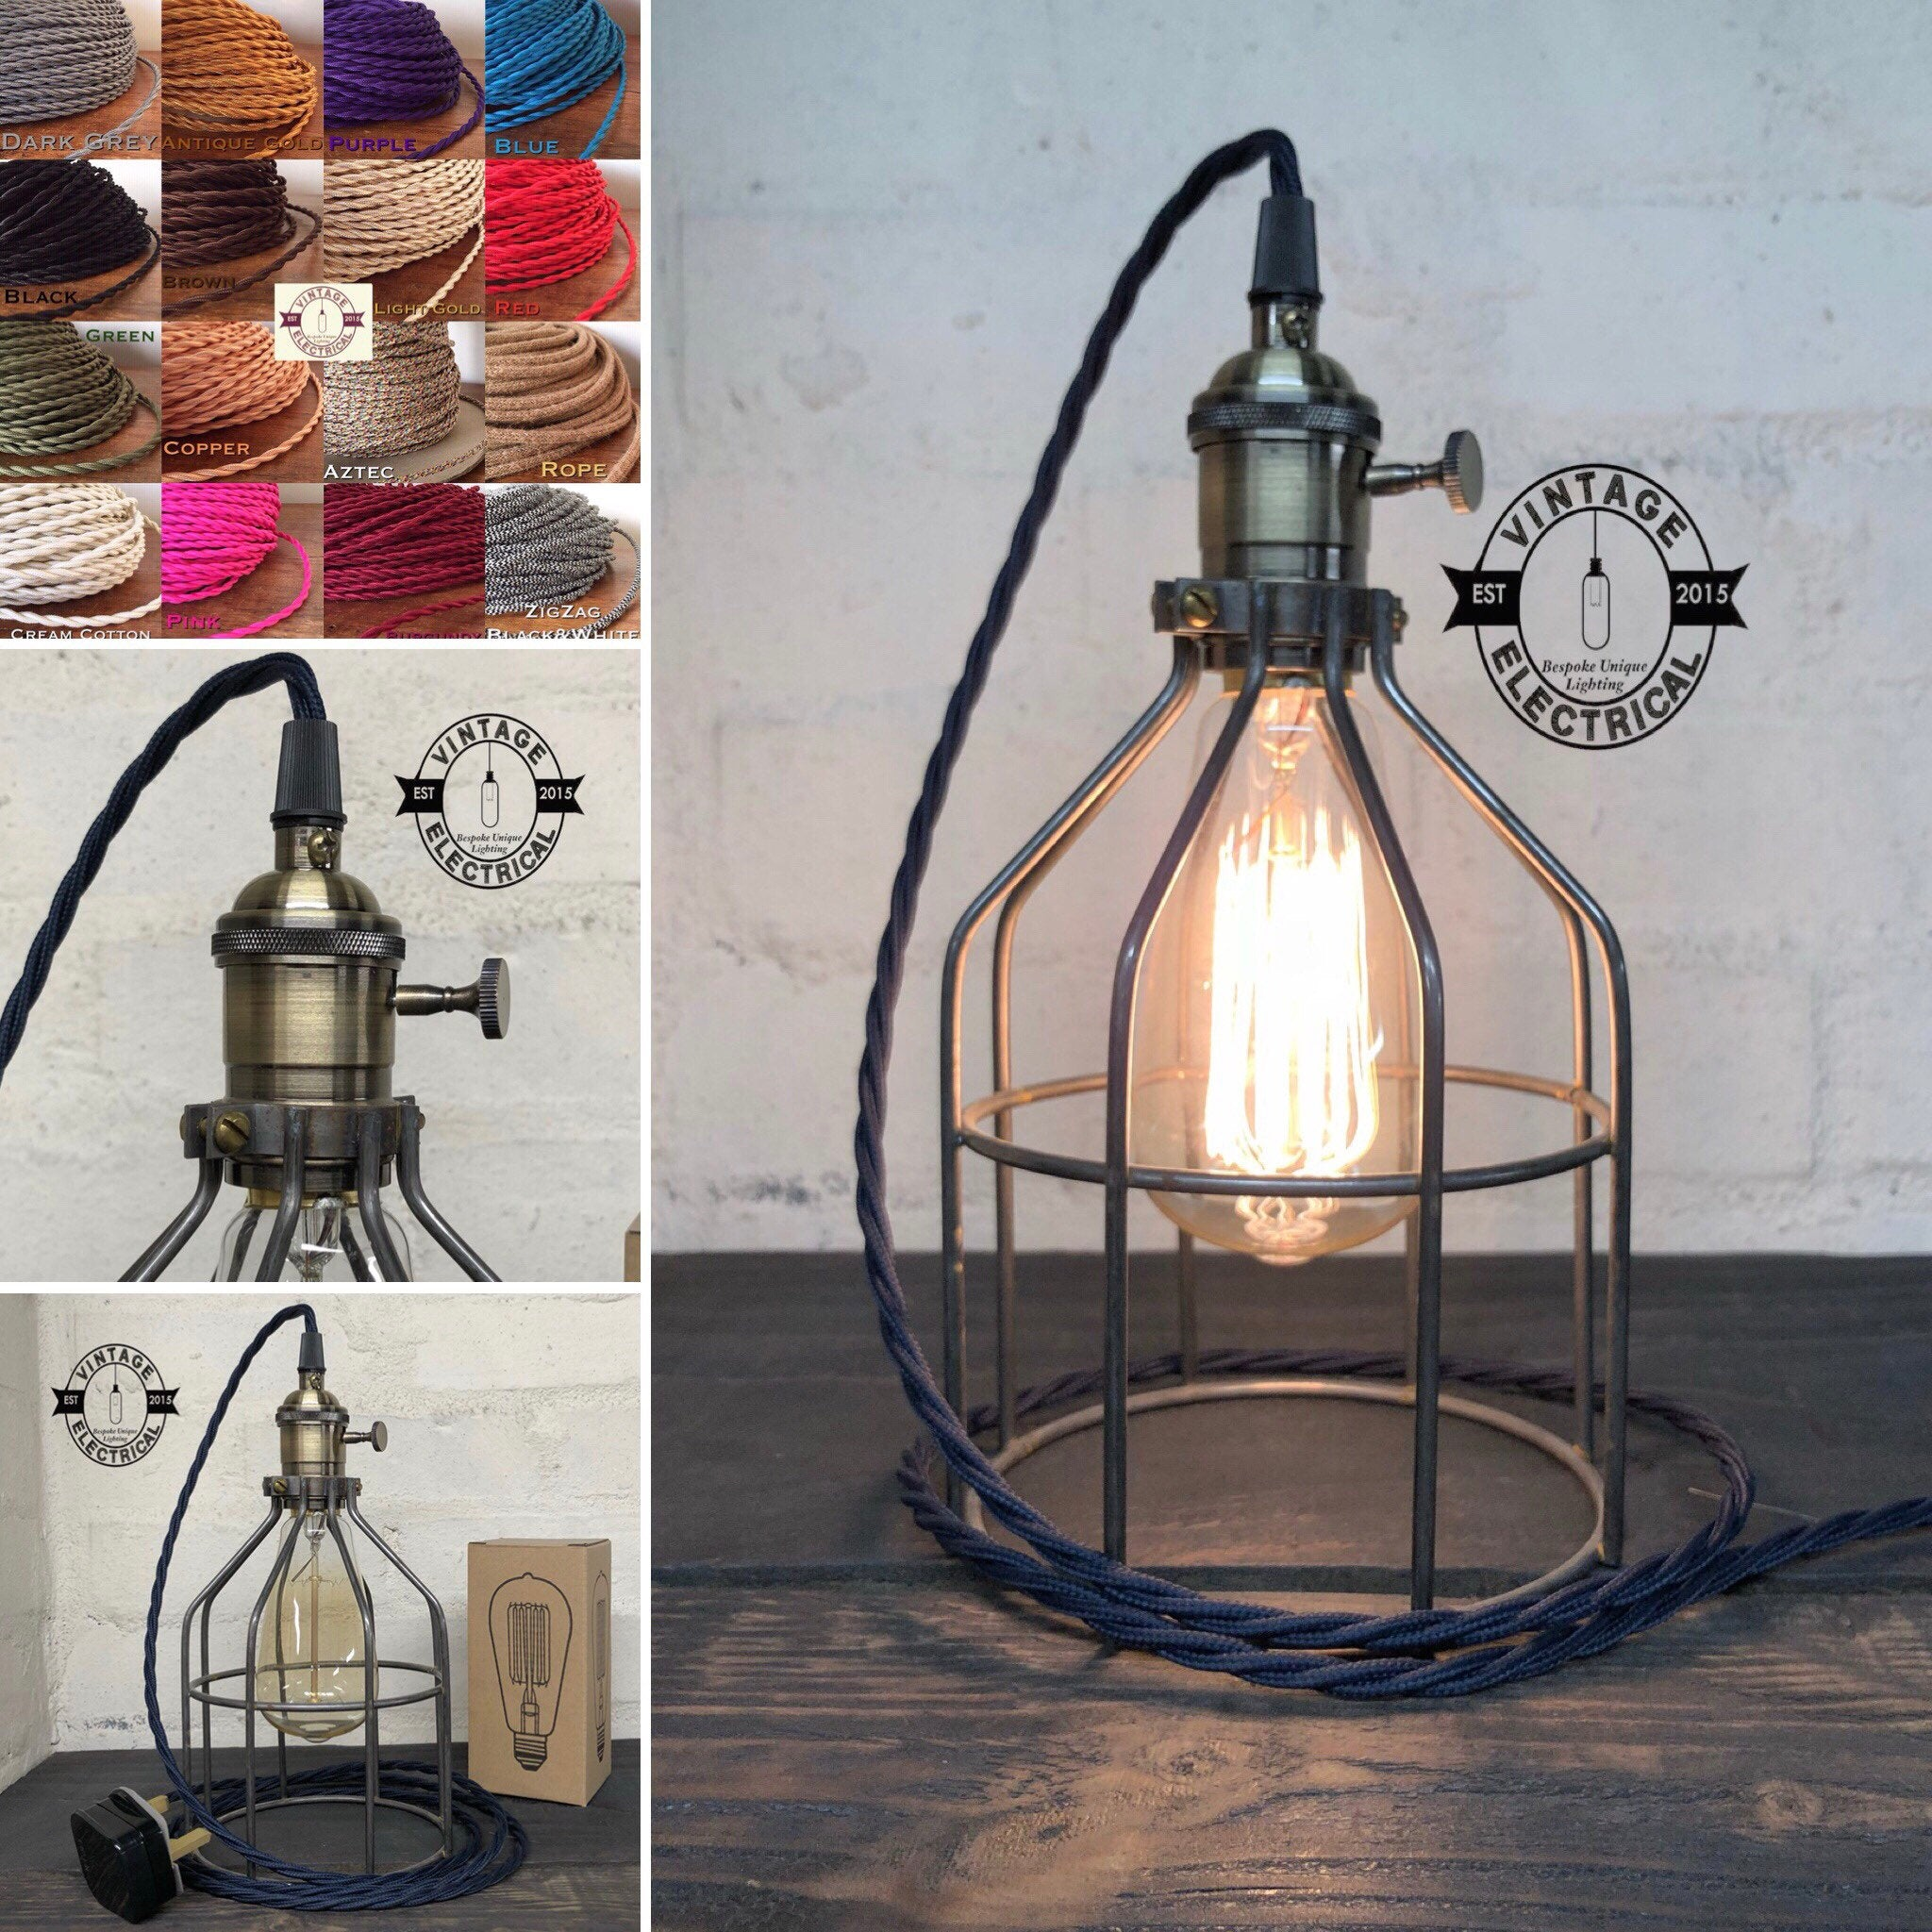 The Caston Cage Raw Steel table light vintage brass style holder with switch fabric 2 metres of cable inspection lamp reading bedside